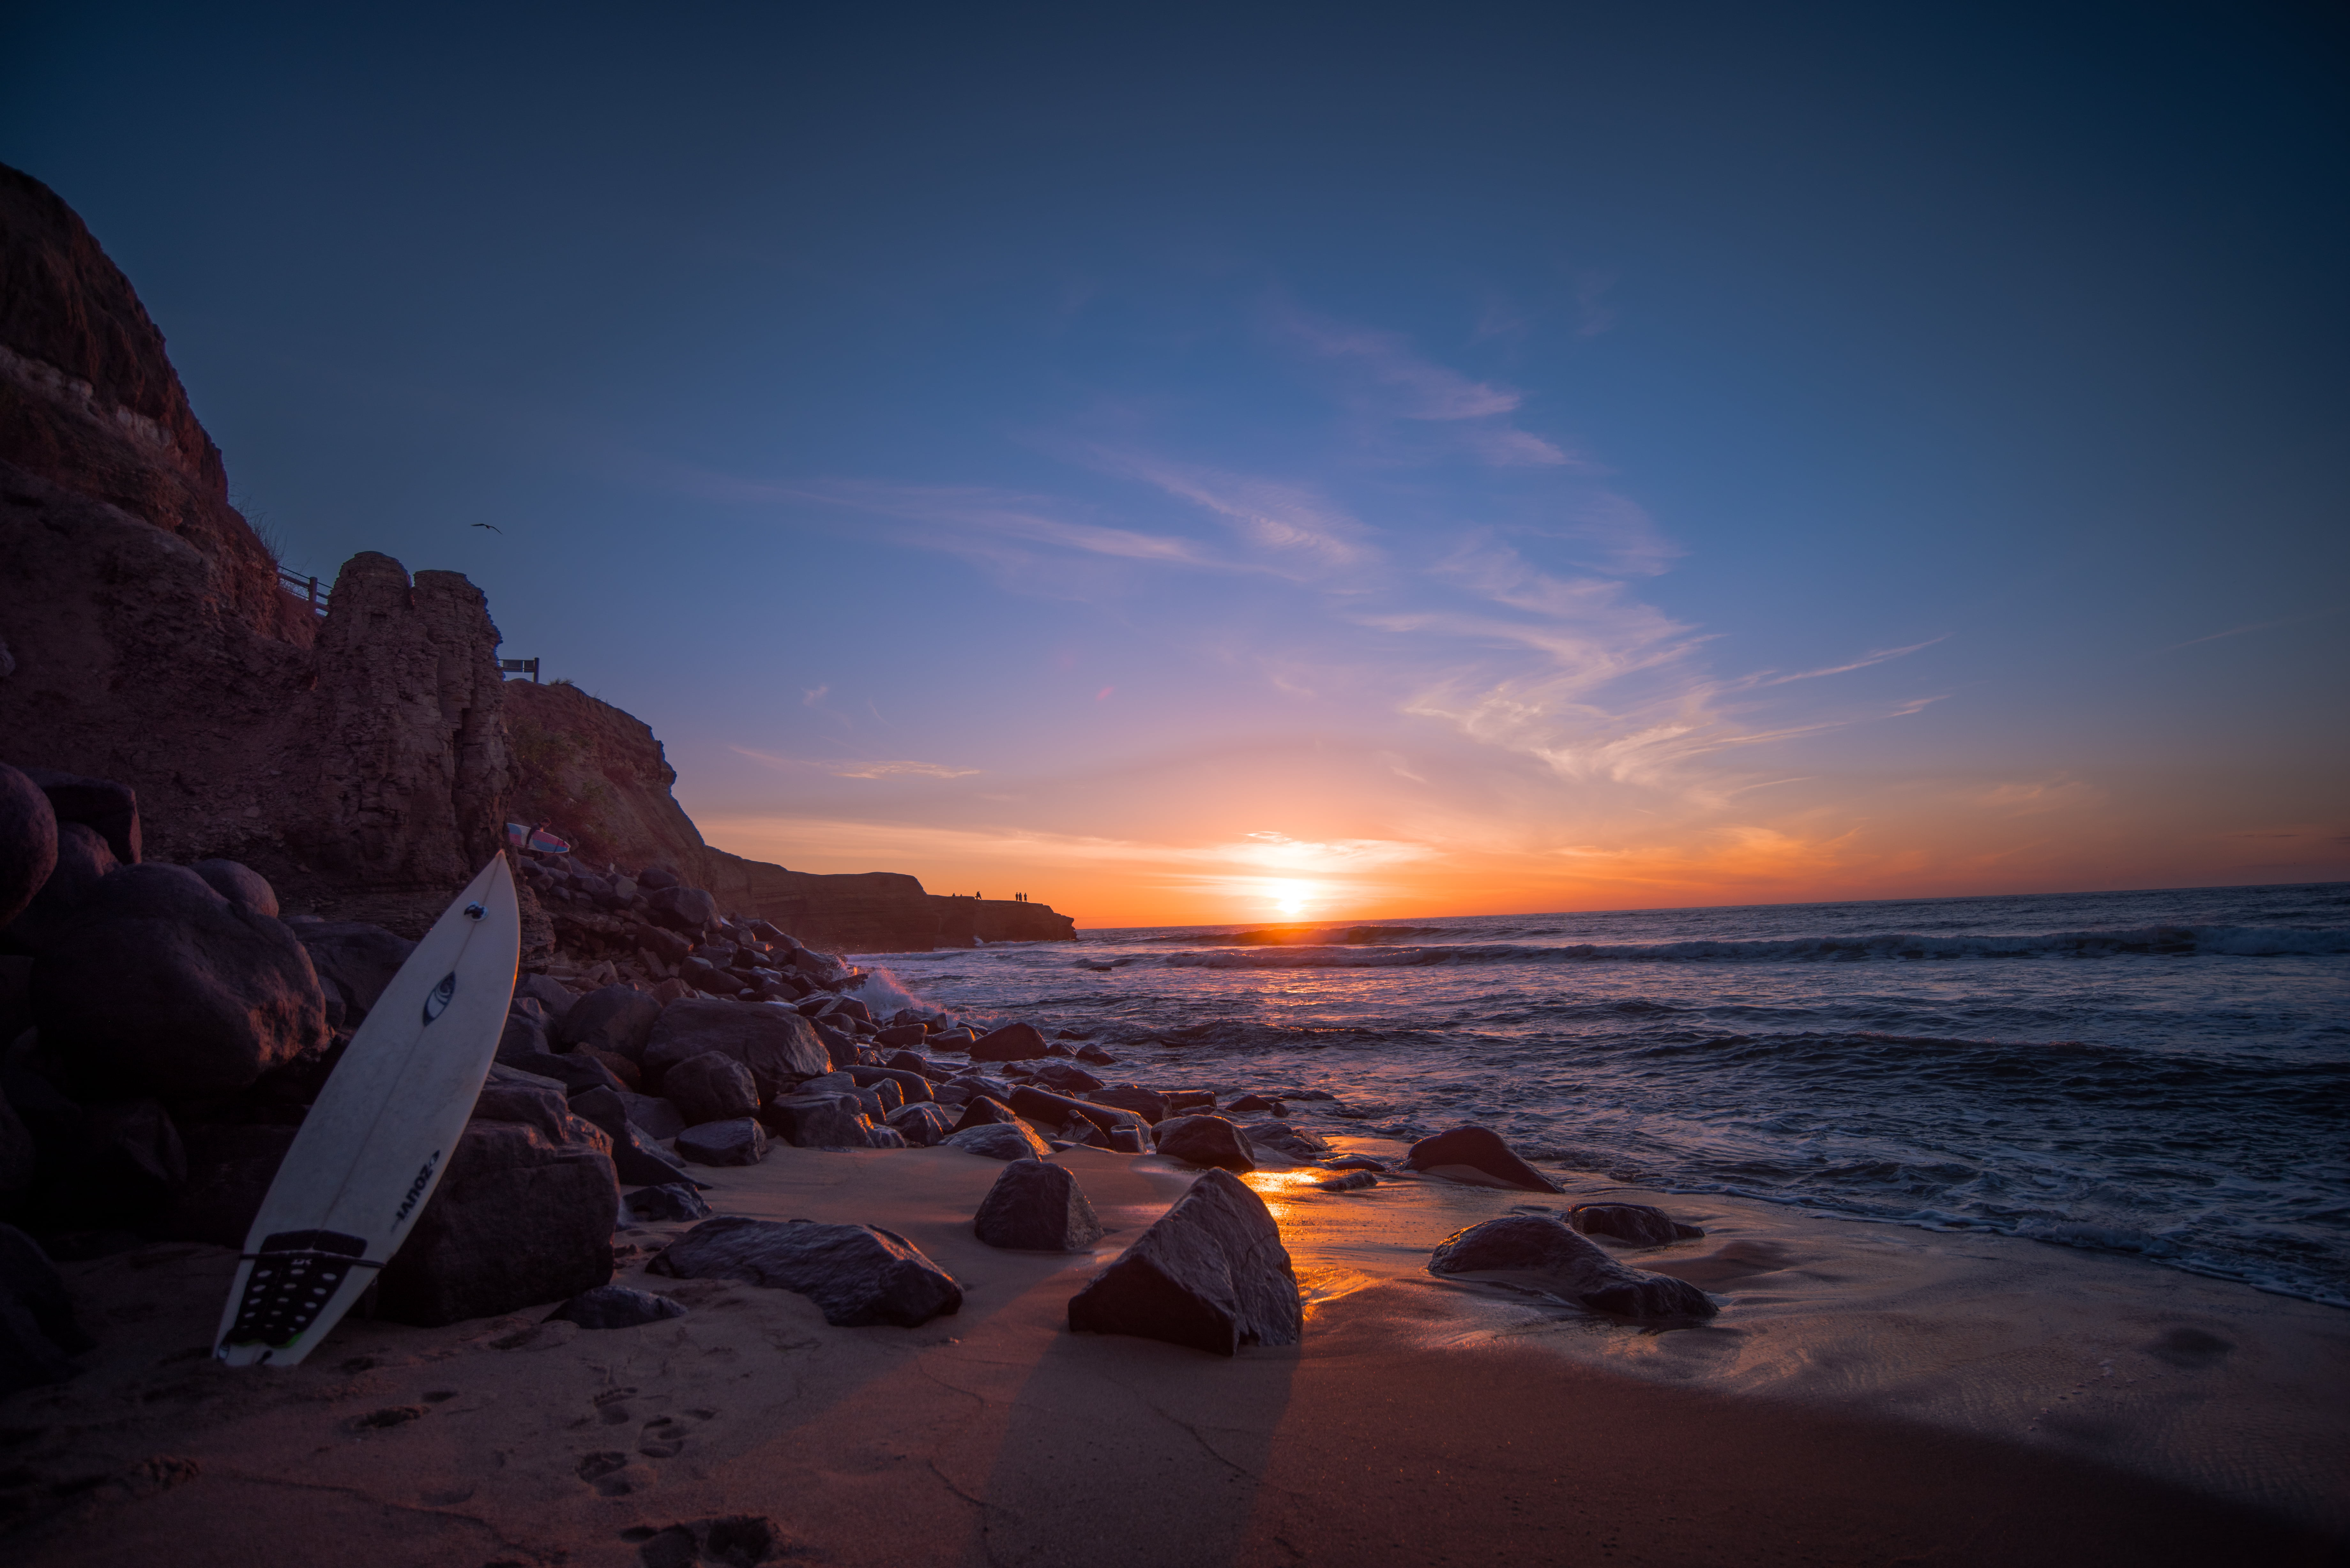 San Diego Wallpaper Hd White Surfboard Leaning On Rock Near Water At Sunset Hd